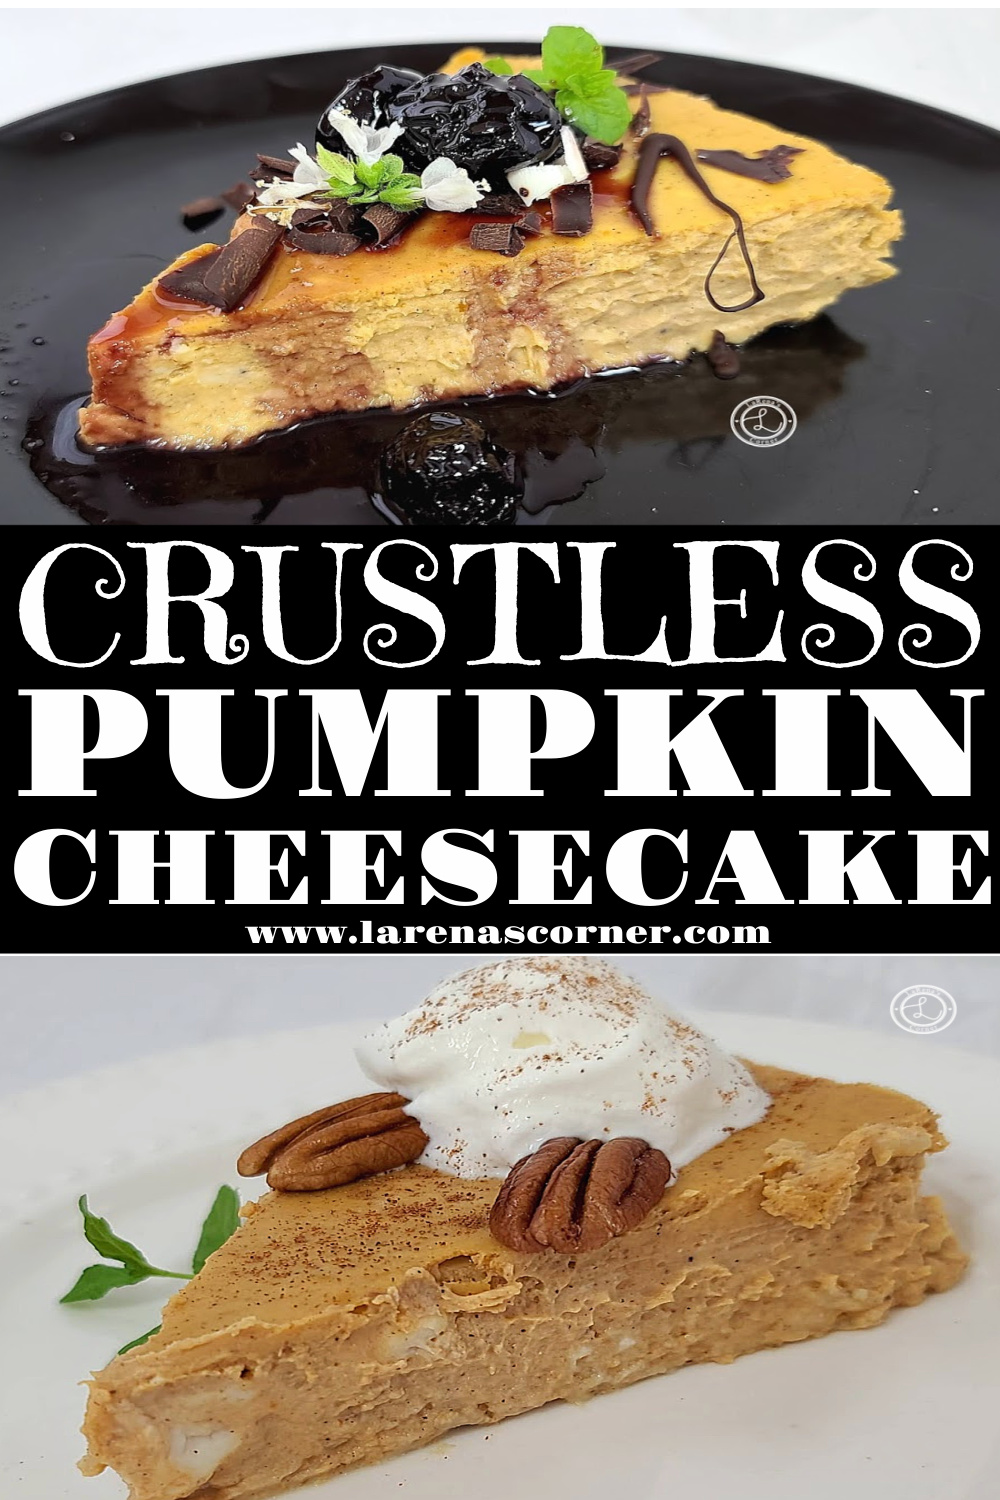 Two pictures of decorated Crustless Pumpkin cheesecake